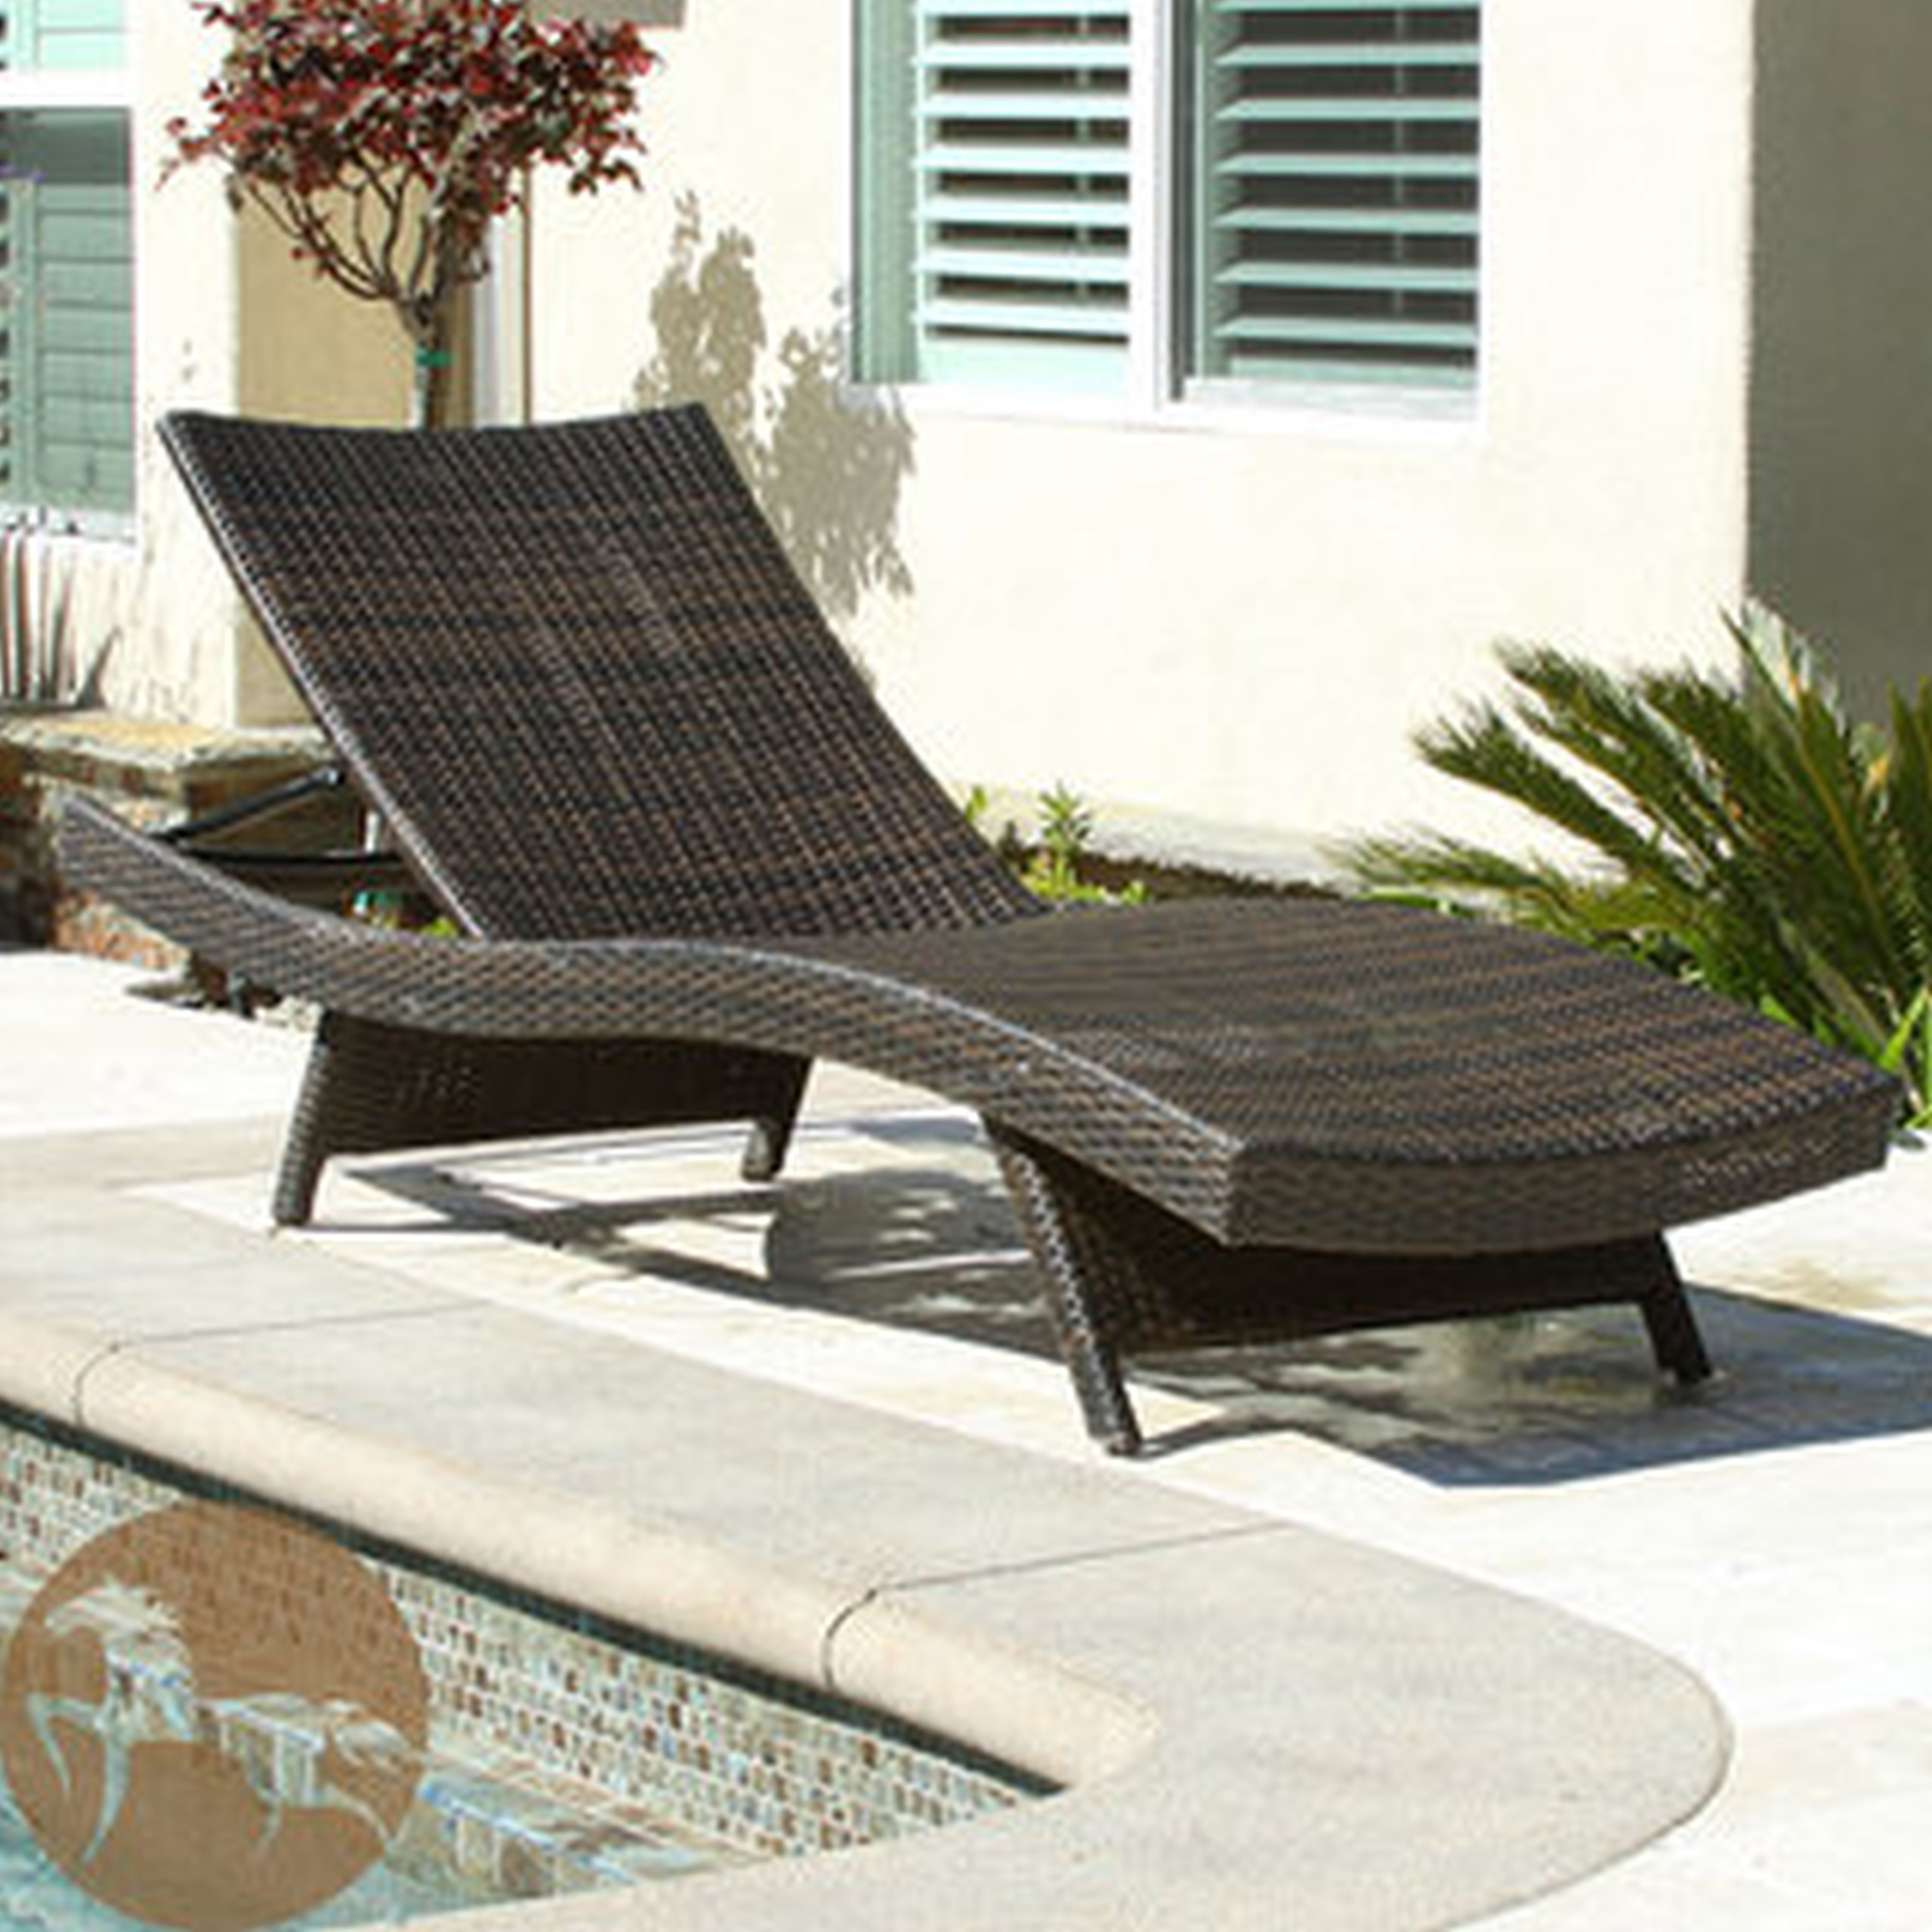 Most Recent All Weather Rattan Wicker Chaise Lounges With Regard To Gutaussehend Wicker Outdoor Chaise Lounge Chairs Cl Keter (View 19 of 25)